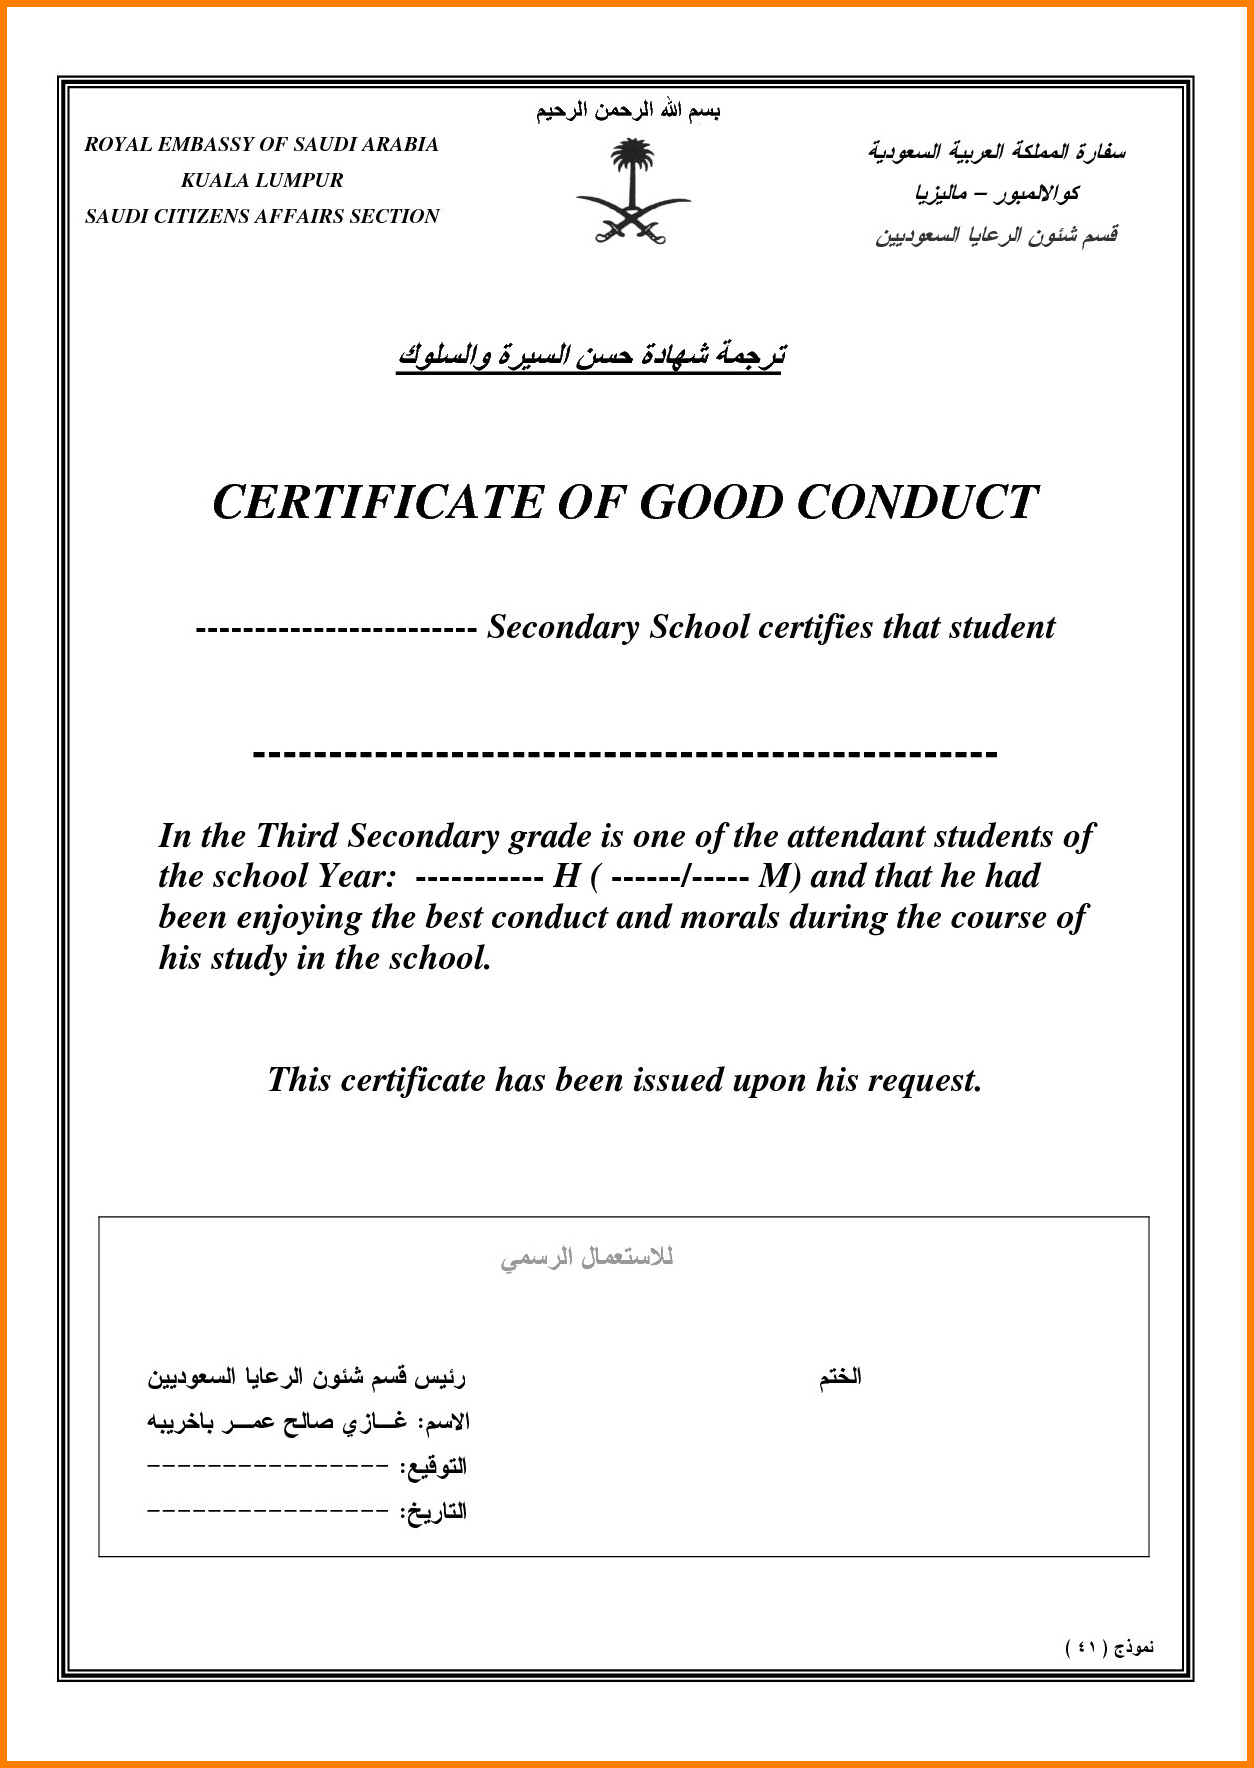 Good Conduct Certificate Template - Atlantaauctionco Intended For Good Conduct Certificate Template